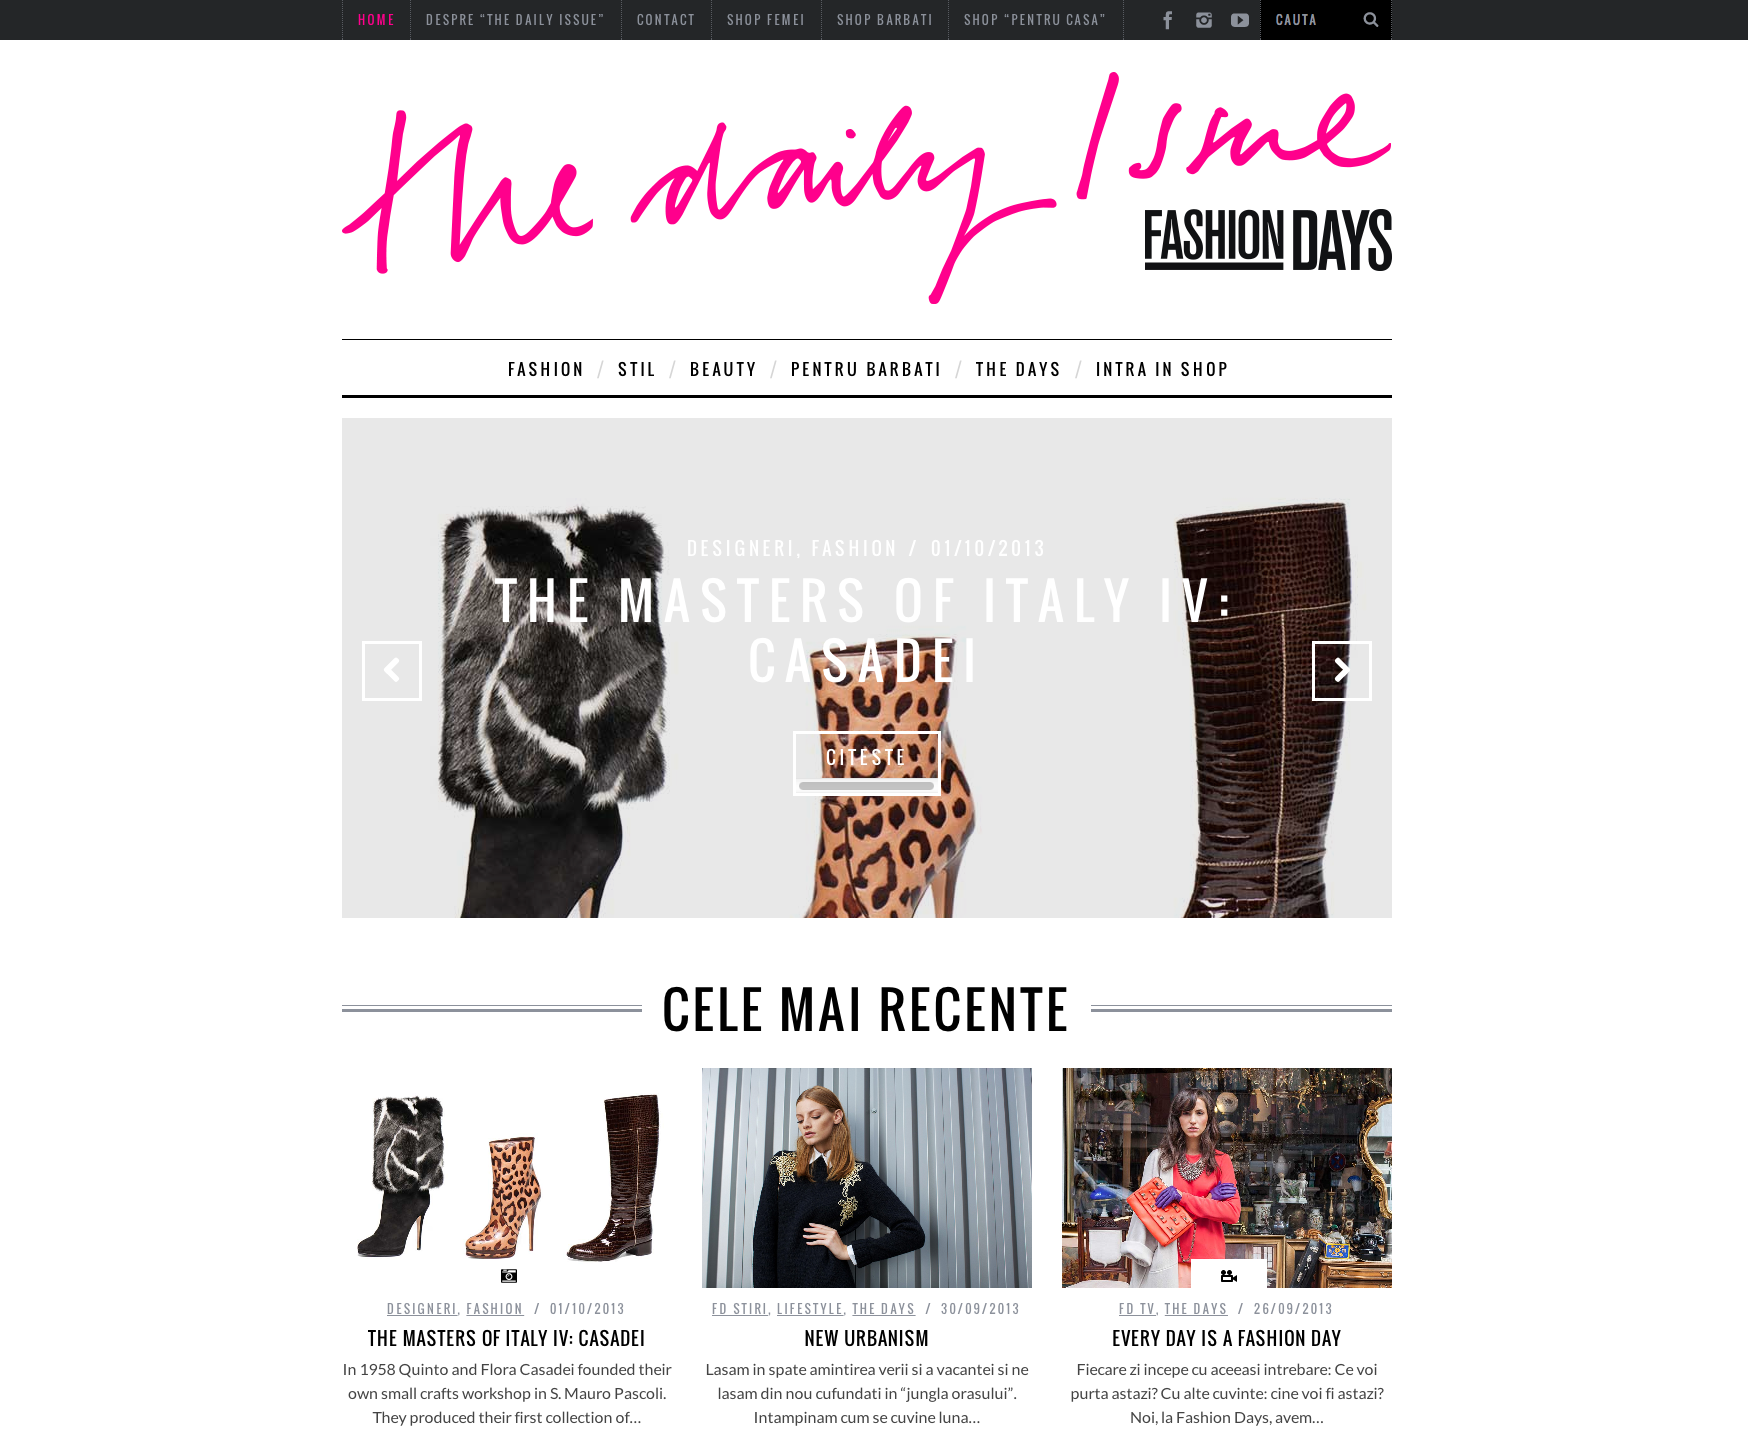 Fashion Days_Screen Shot_ The Daily Issue_global